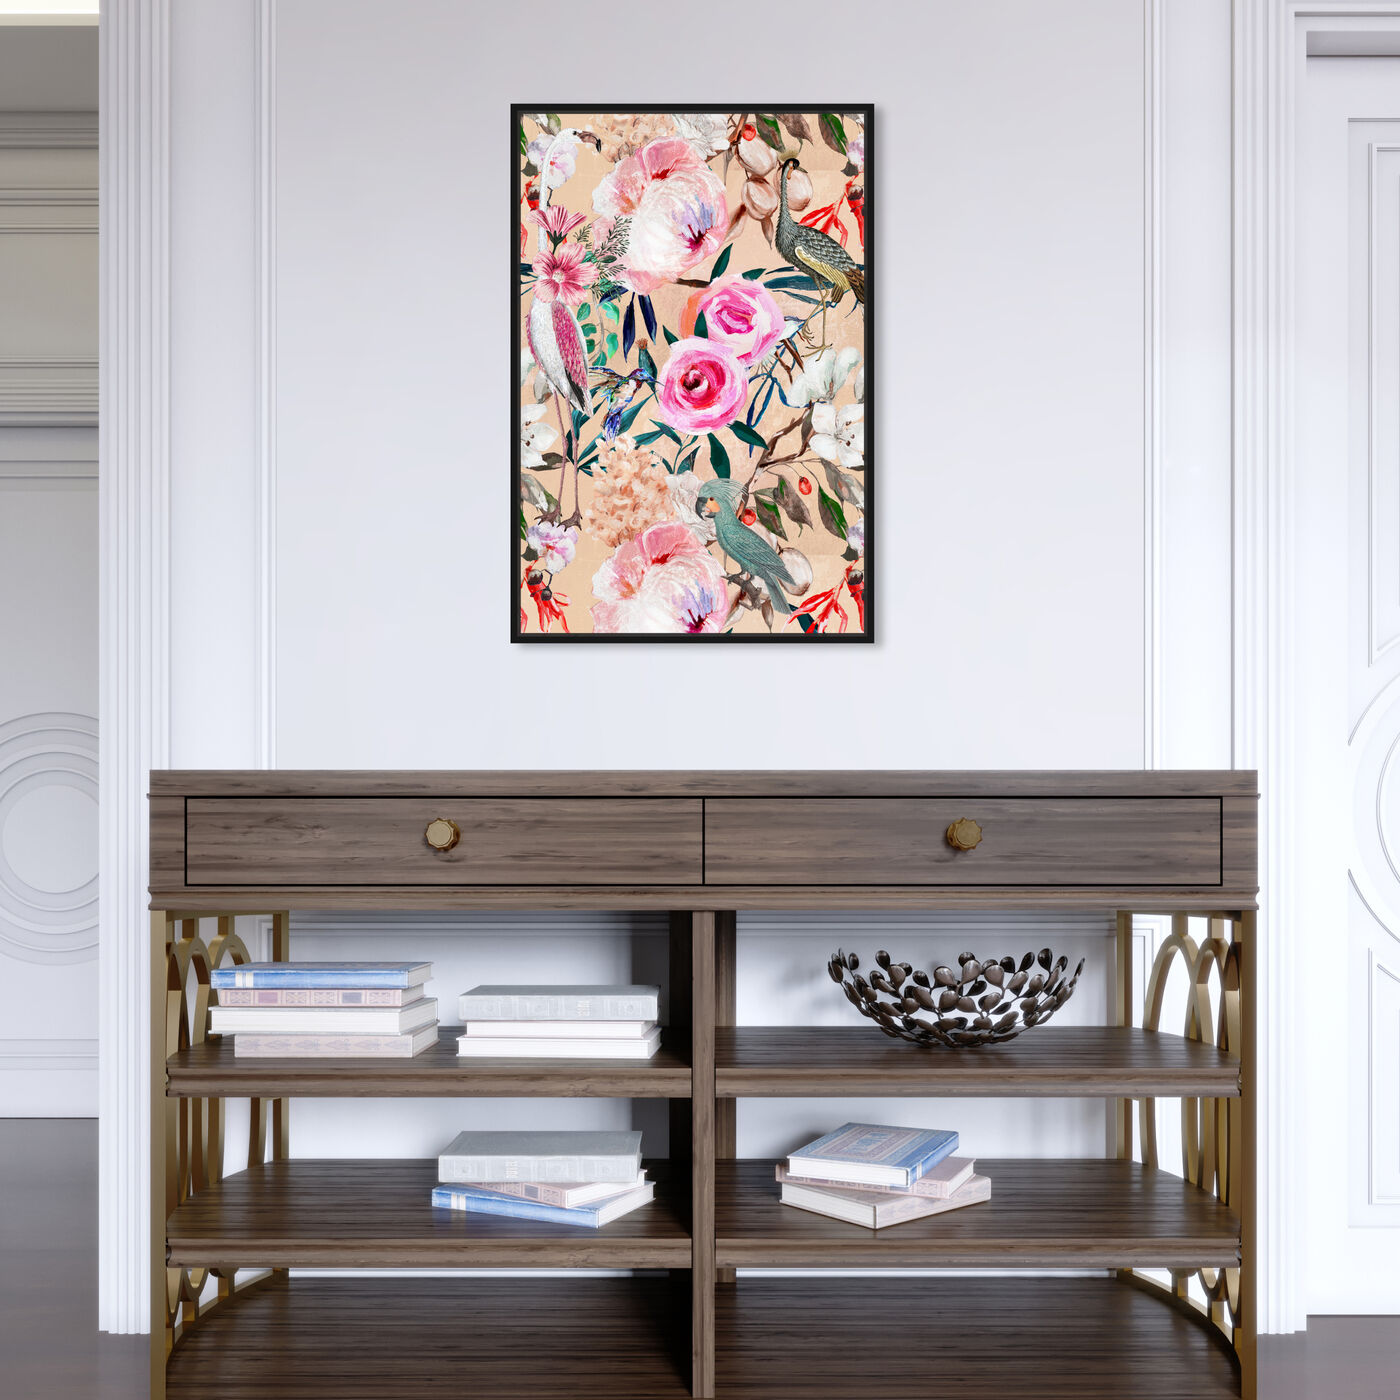 Hanging view of Le Tropic II featuring floral and botanical and florals art.